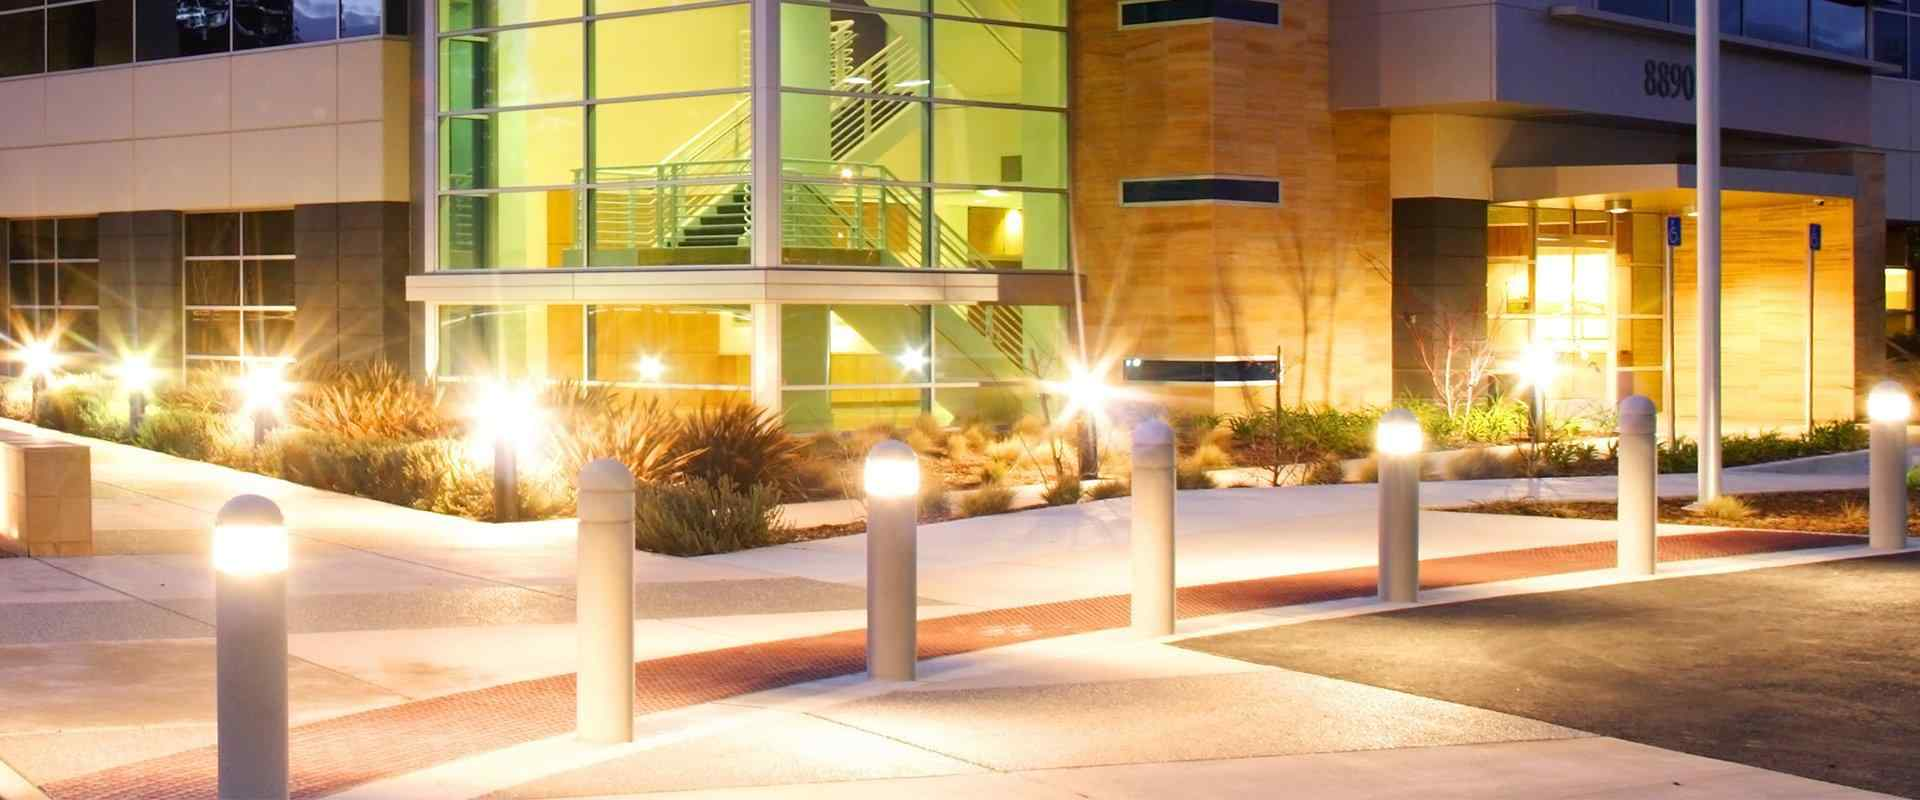 a commercial building at dusk with lights